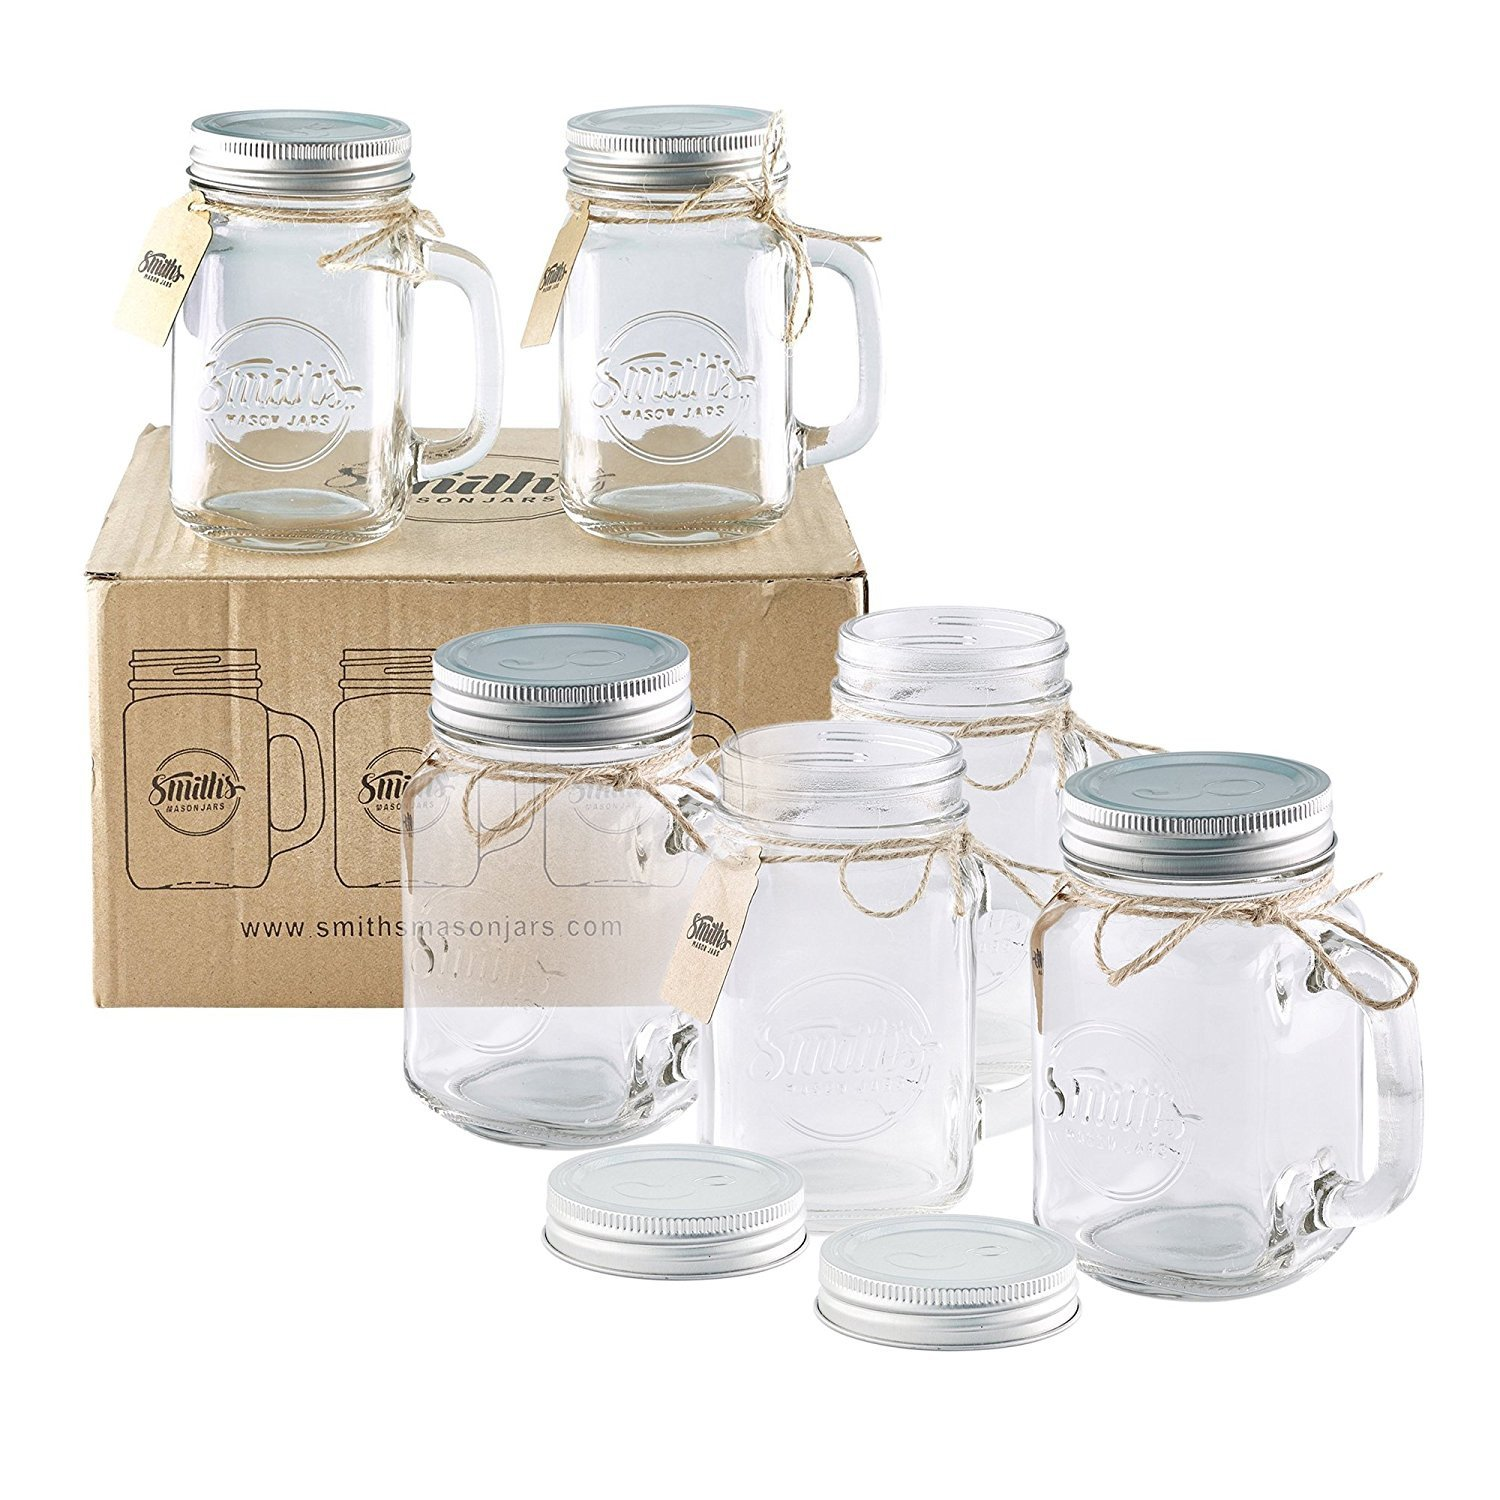 smiths-mason-jars-mugs-with-lids_1920x